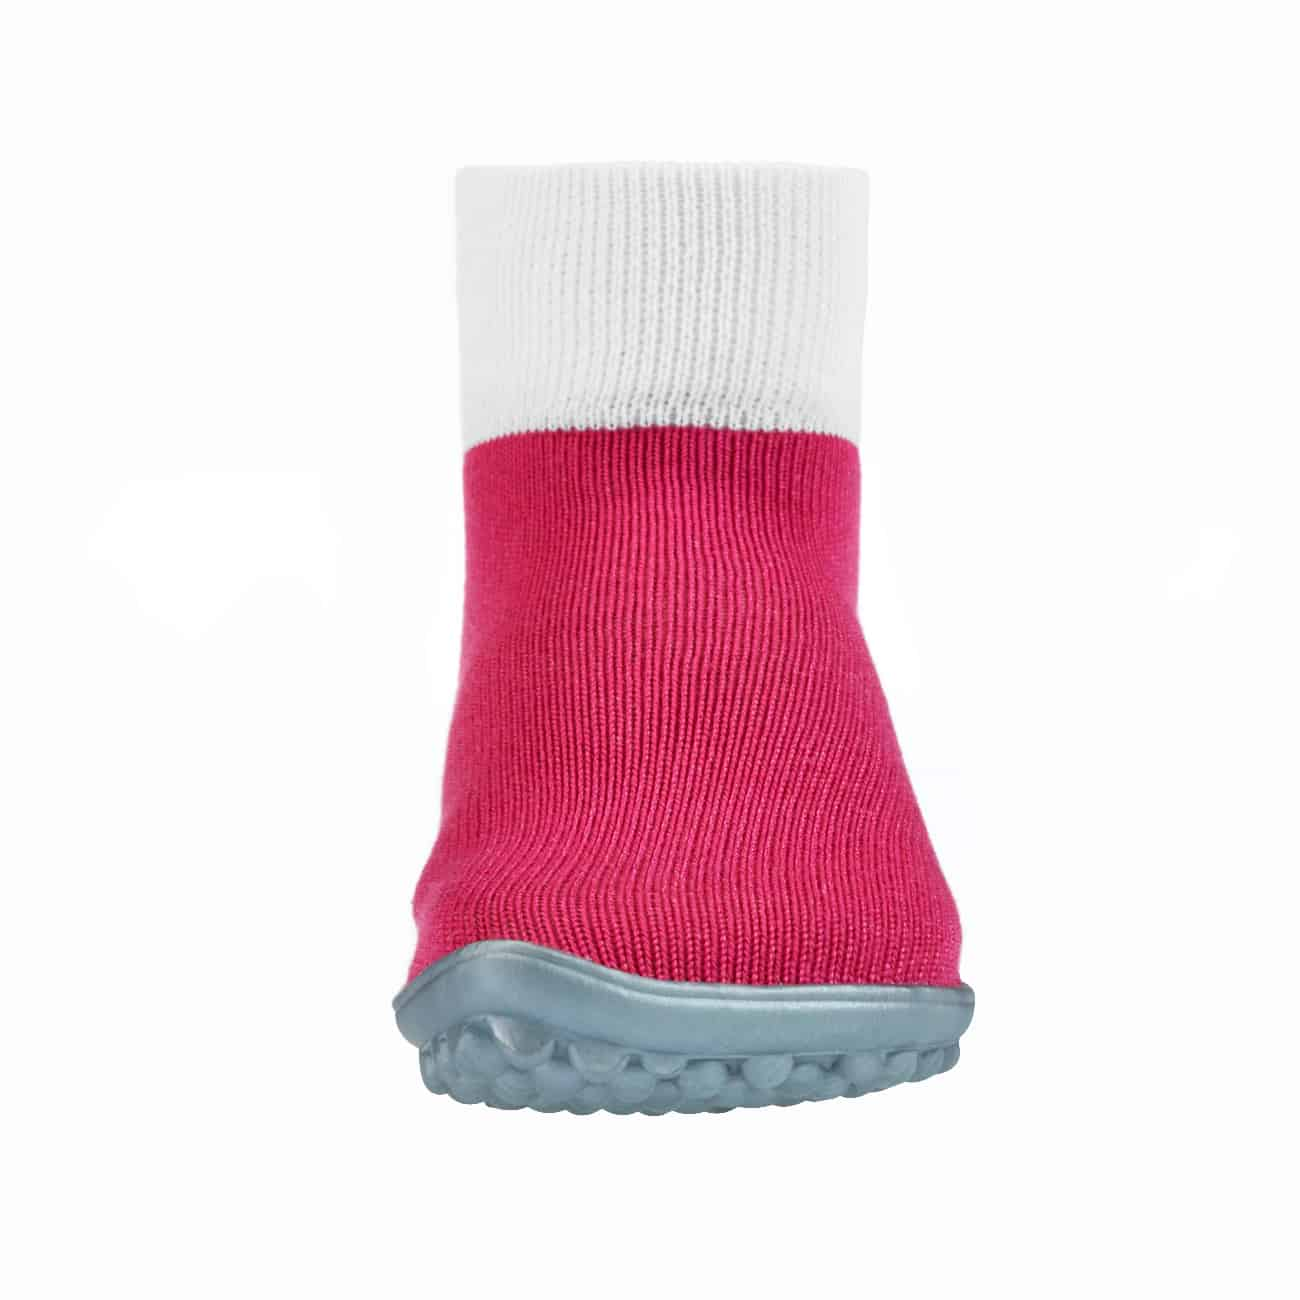 Leguano Pink Leguanitos for kids